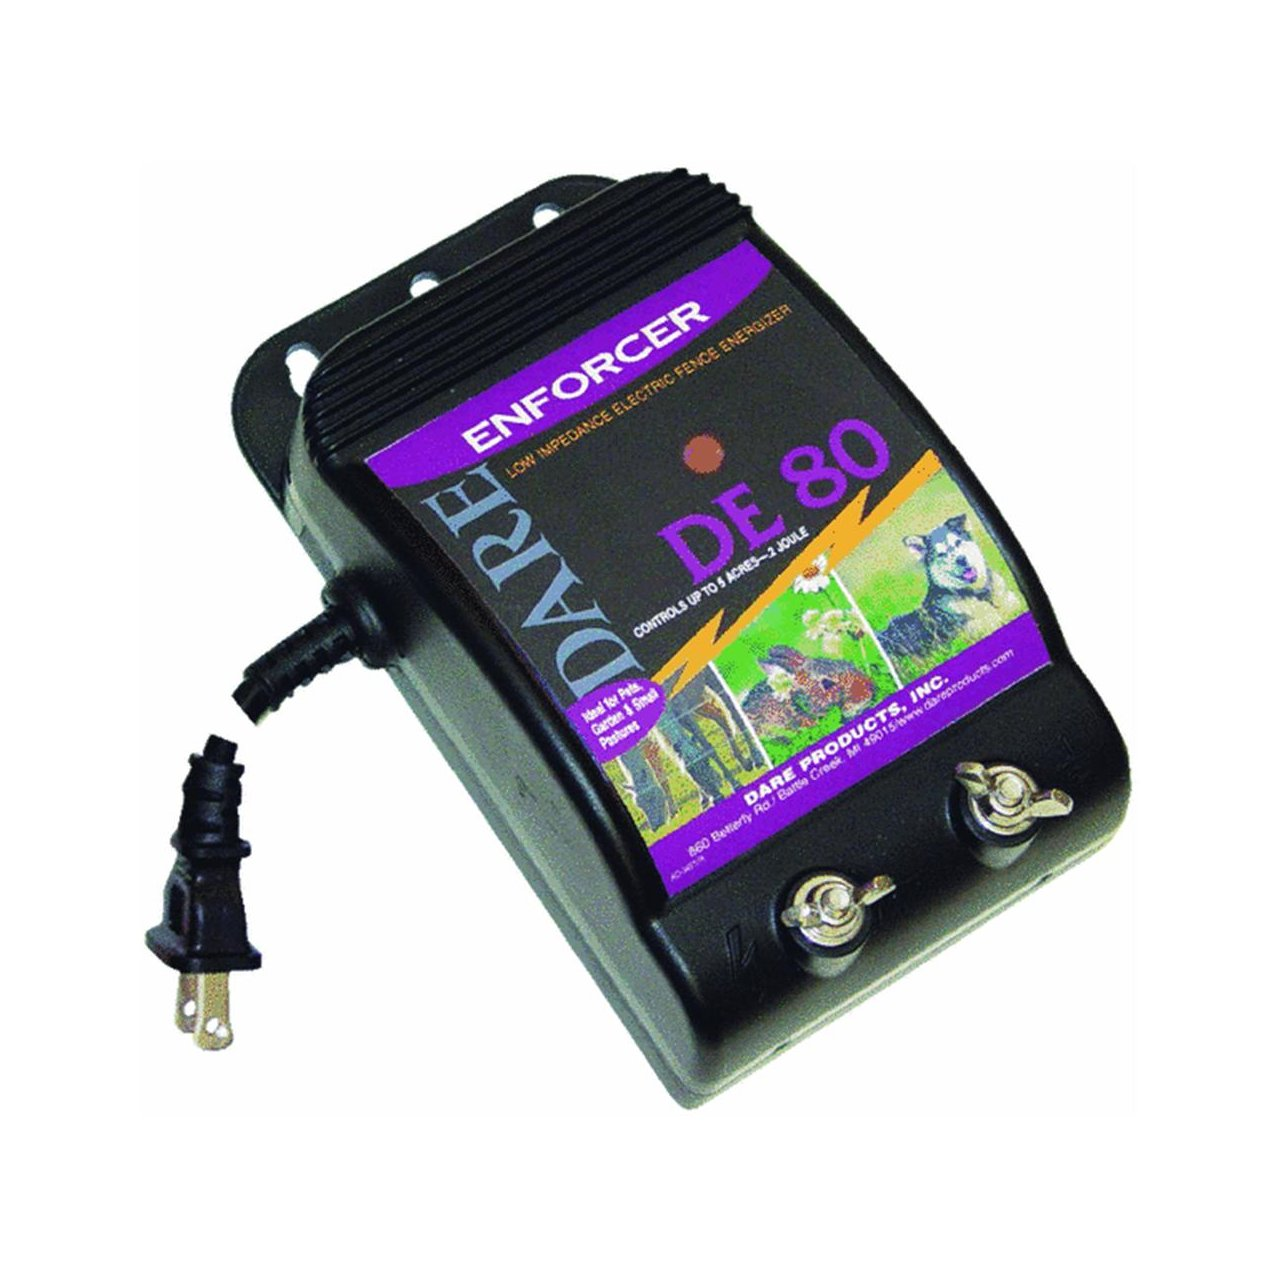 Dare Electric Fence Energizer 2 Joule Agricultural Battery Backup Regulator Circuit Diagram Tradeoficcom Livestock Chargers Garden Outdoor